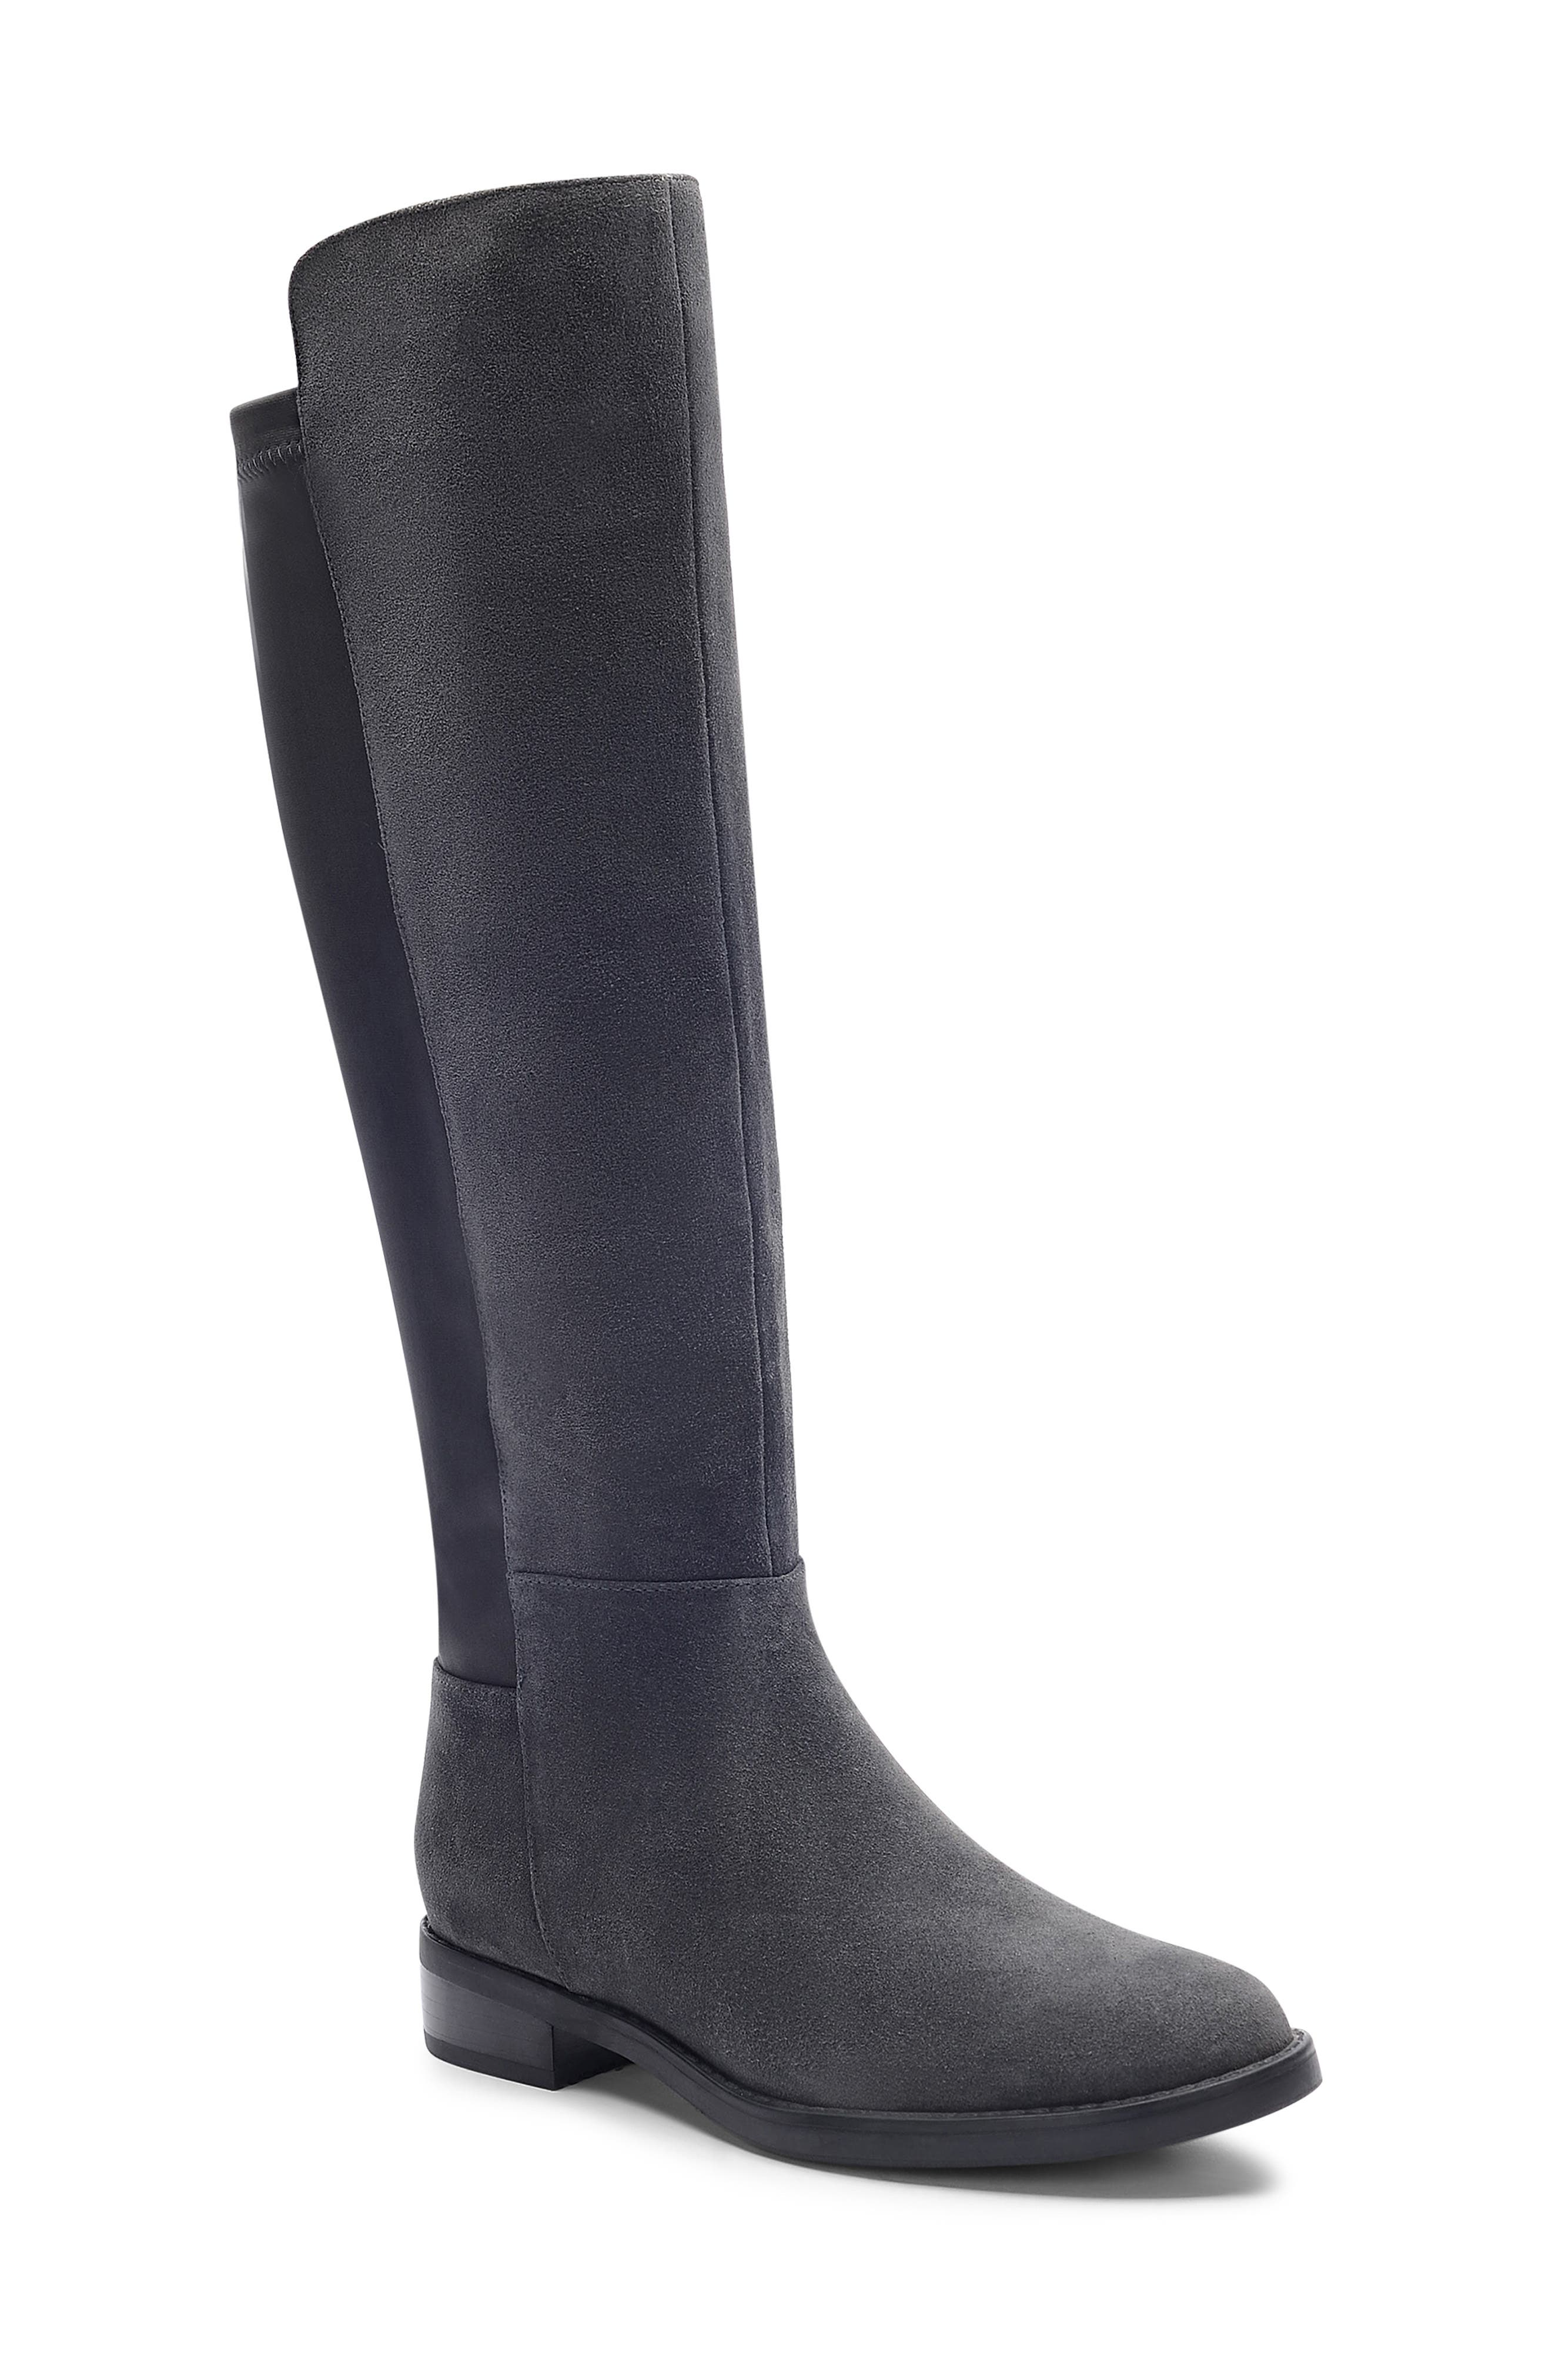 BLONDO, Ellie Waterproof Knee High Riding Boot, Main thumbnail 1, color, DARK GREY SUEDE